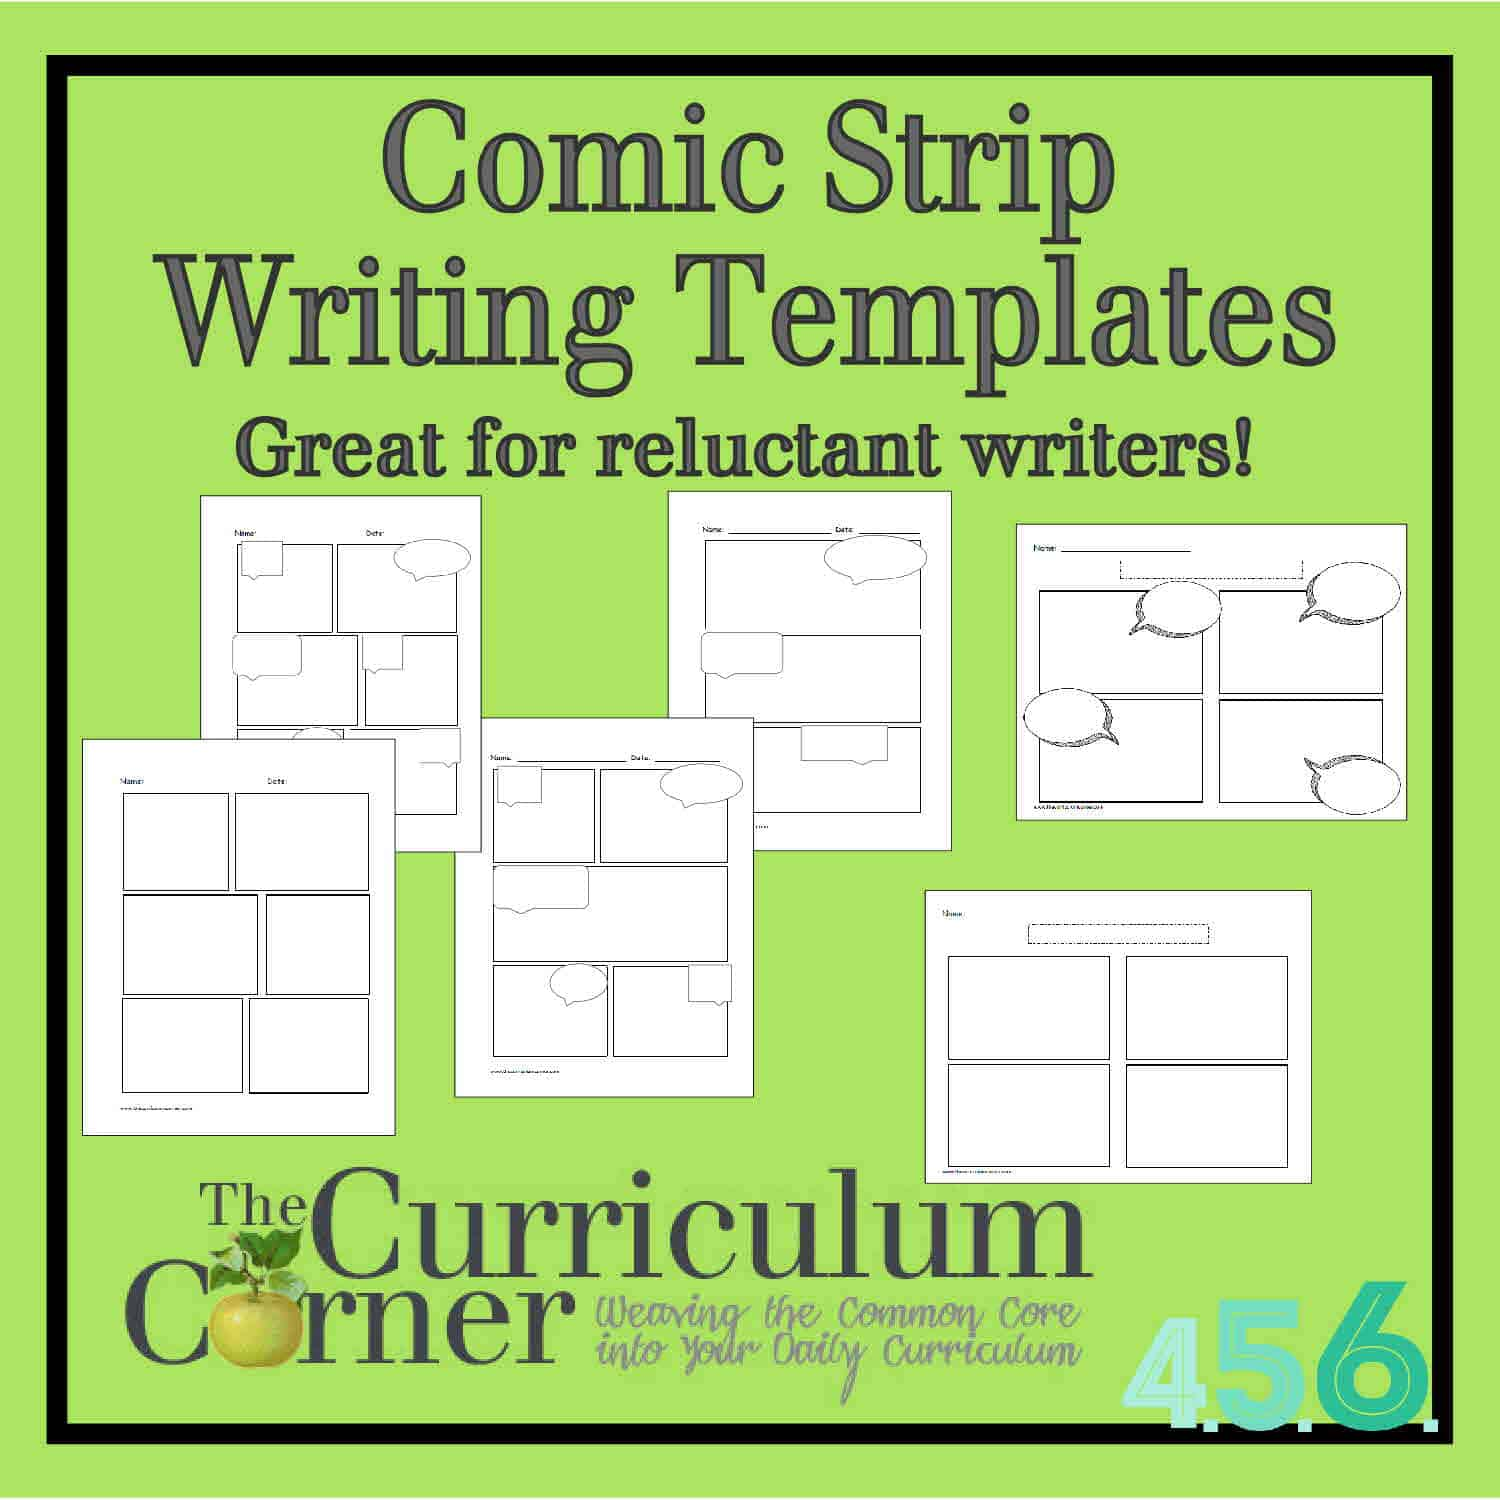 Comic Strip Writing Templates The Curriculum Corner 456 – Comic Strip Template